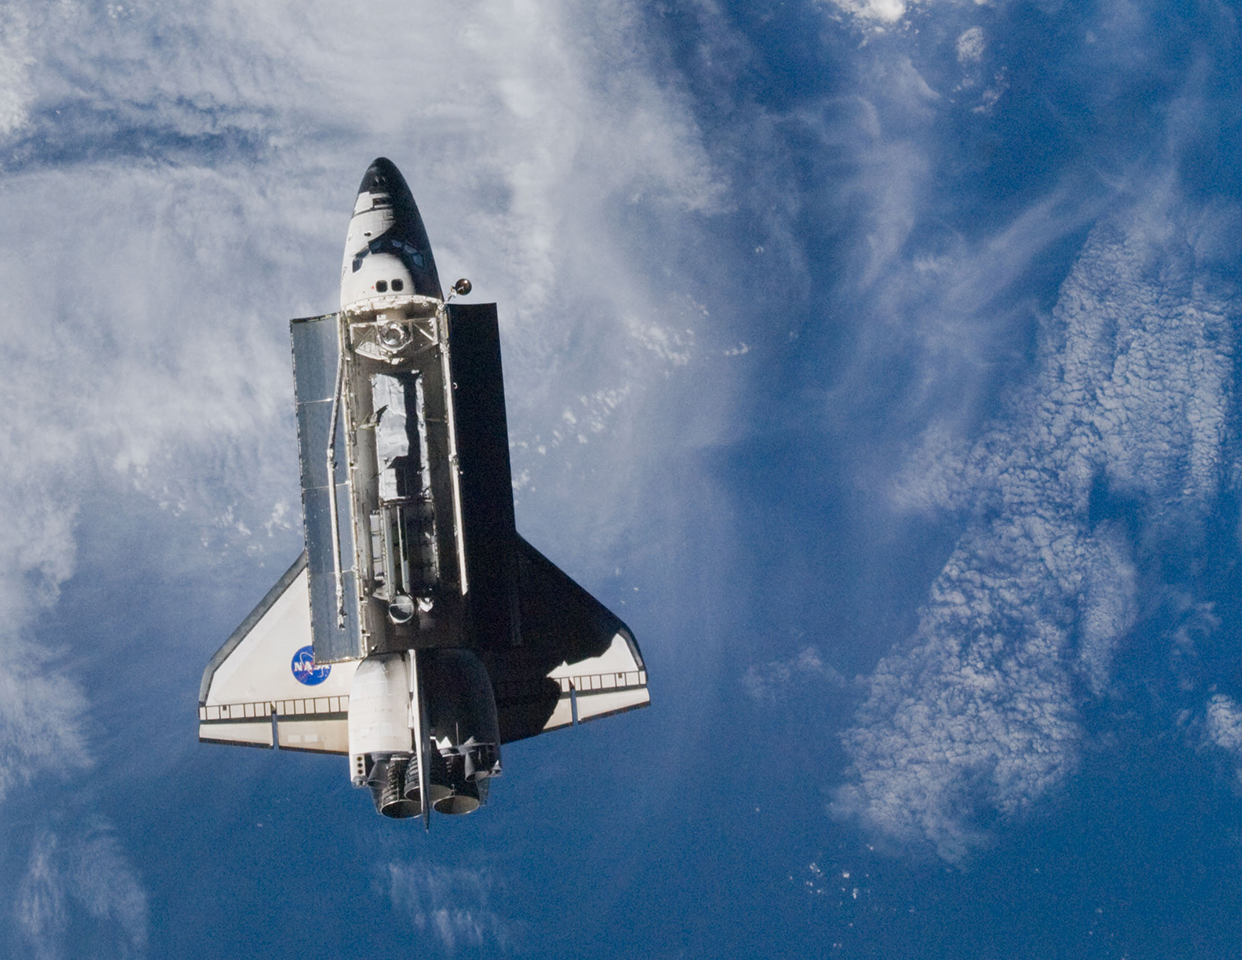 Space Shuttle Discovery approaches the International Space Station (NASA image iss018e042051)